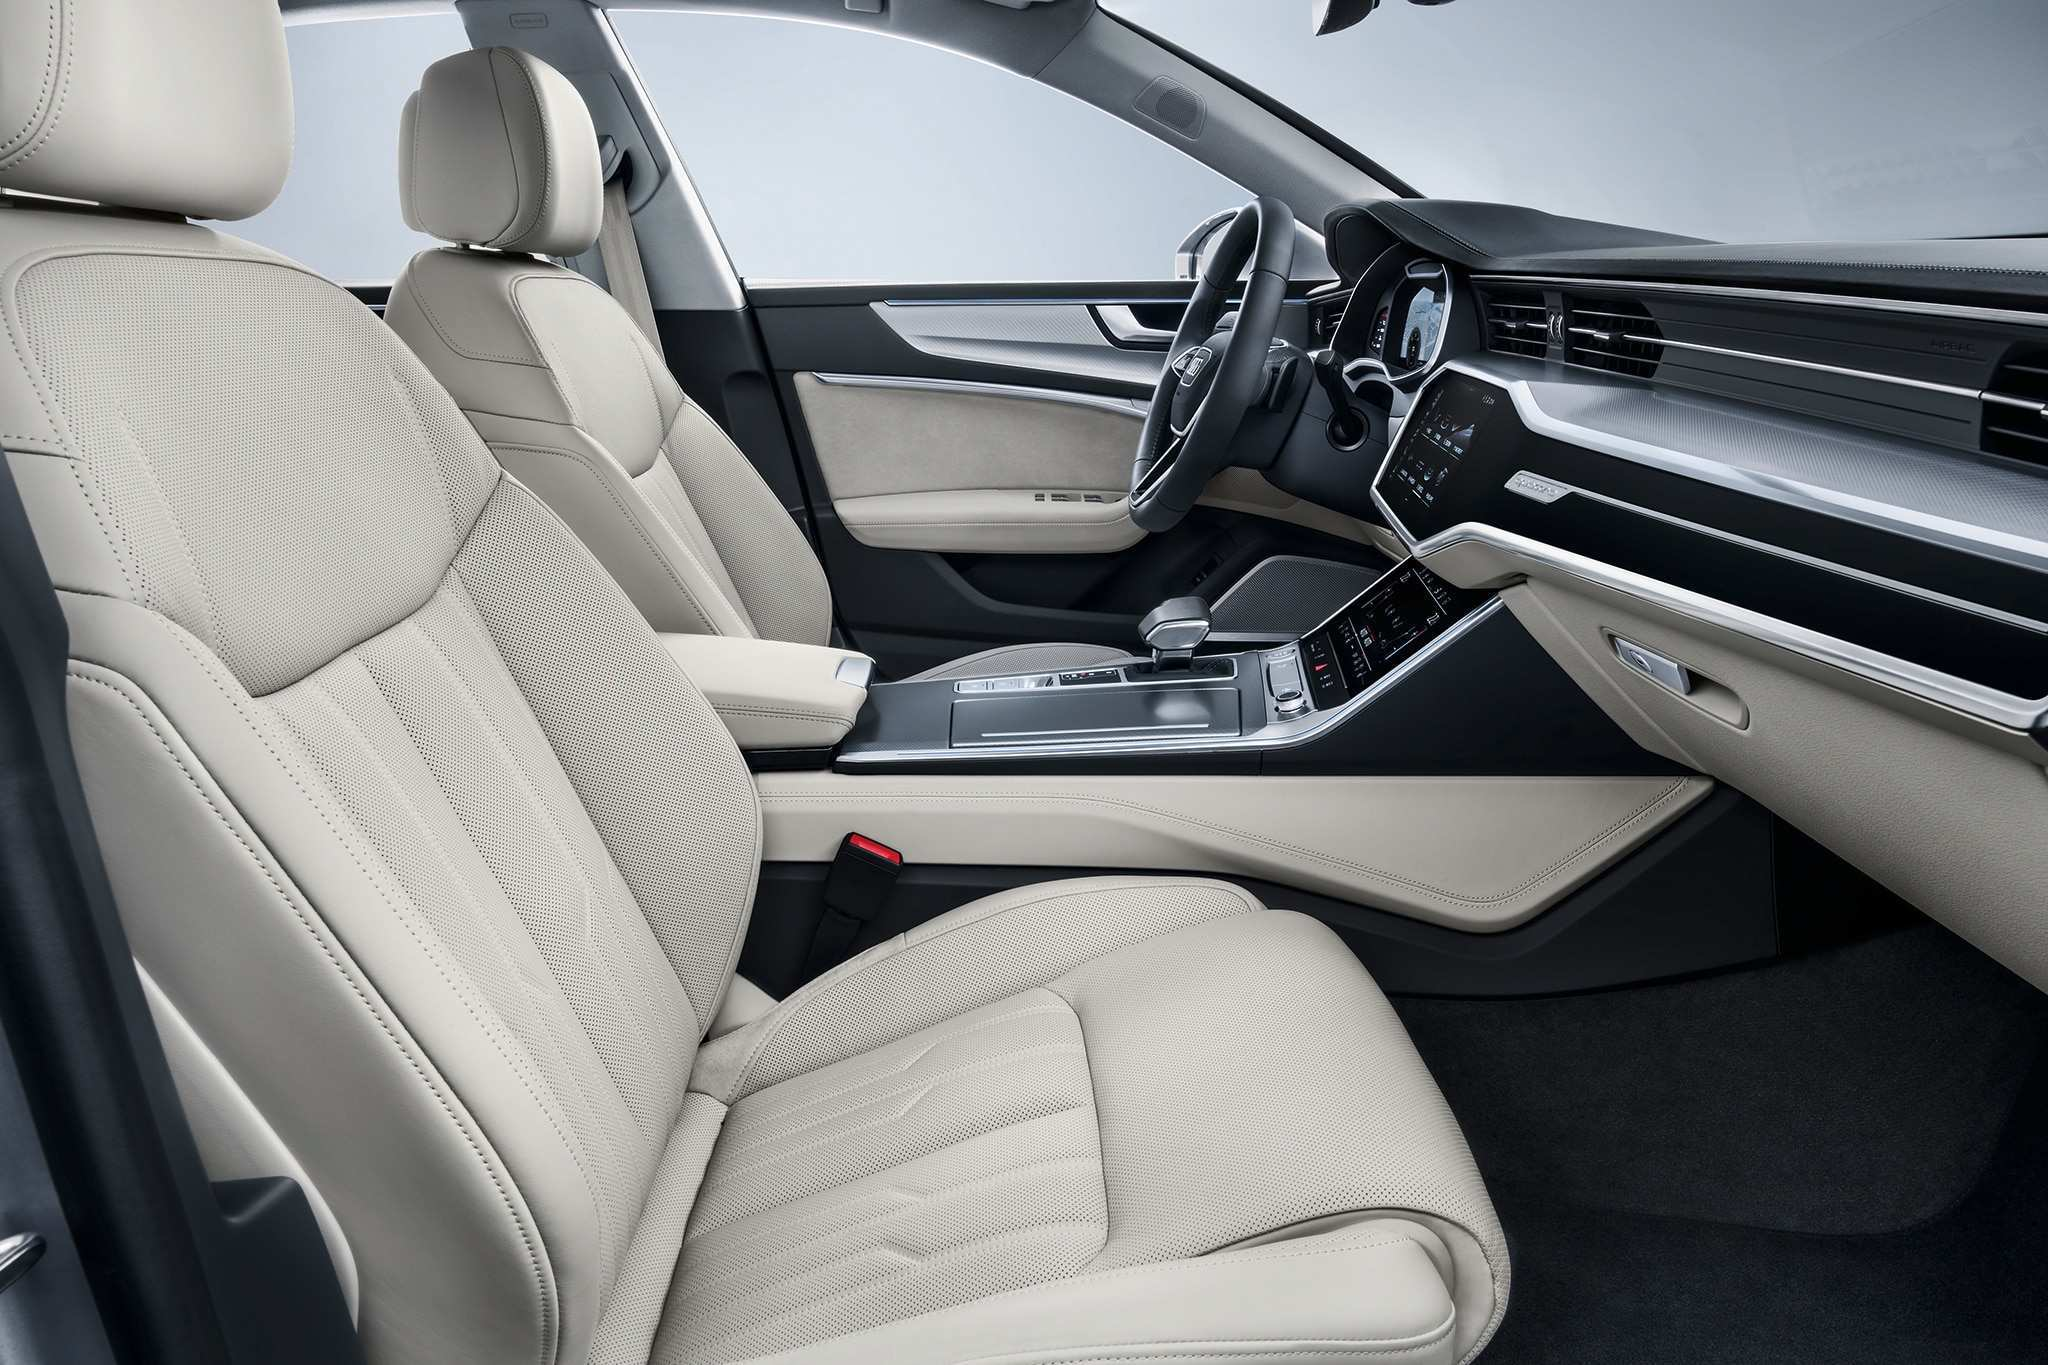 47 All New 2019 Audi A7 Interior Research New by 2019 Audi A7 Interior